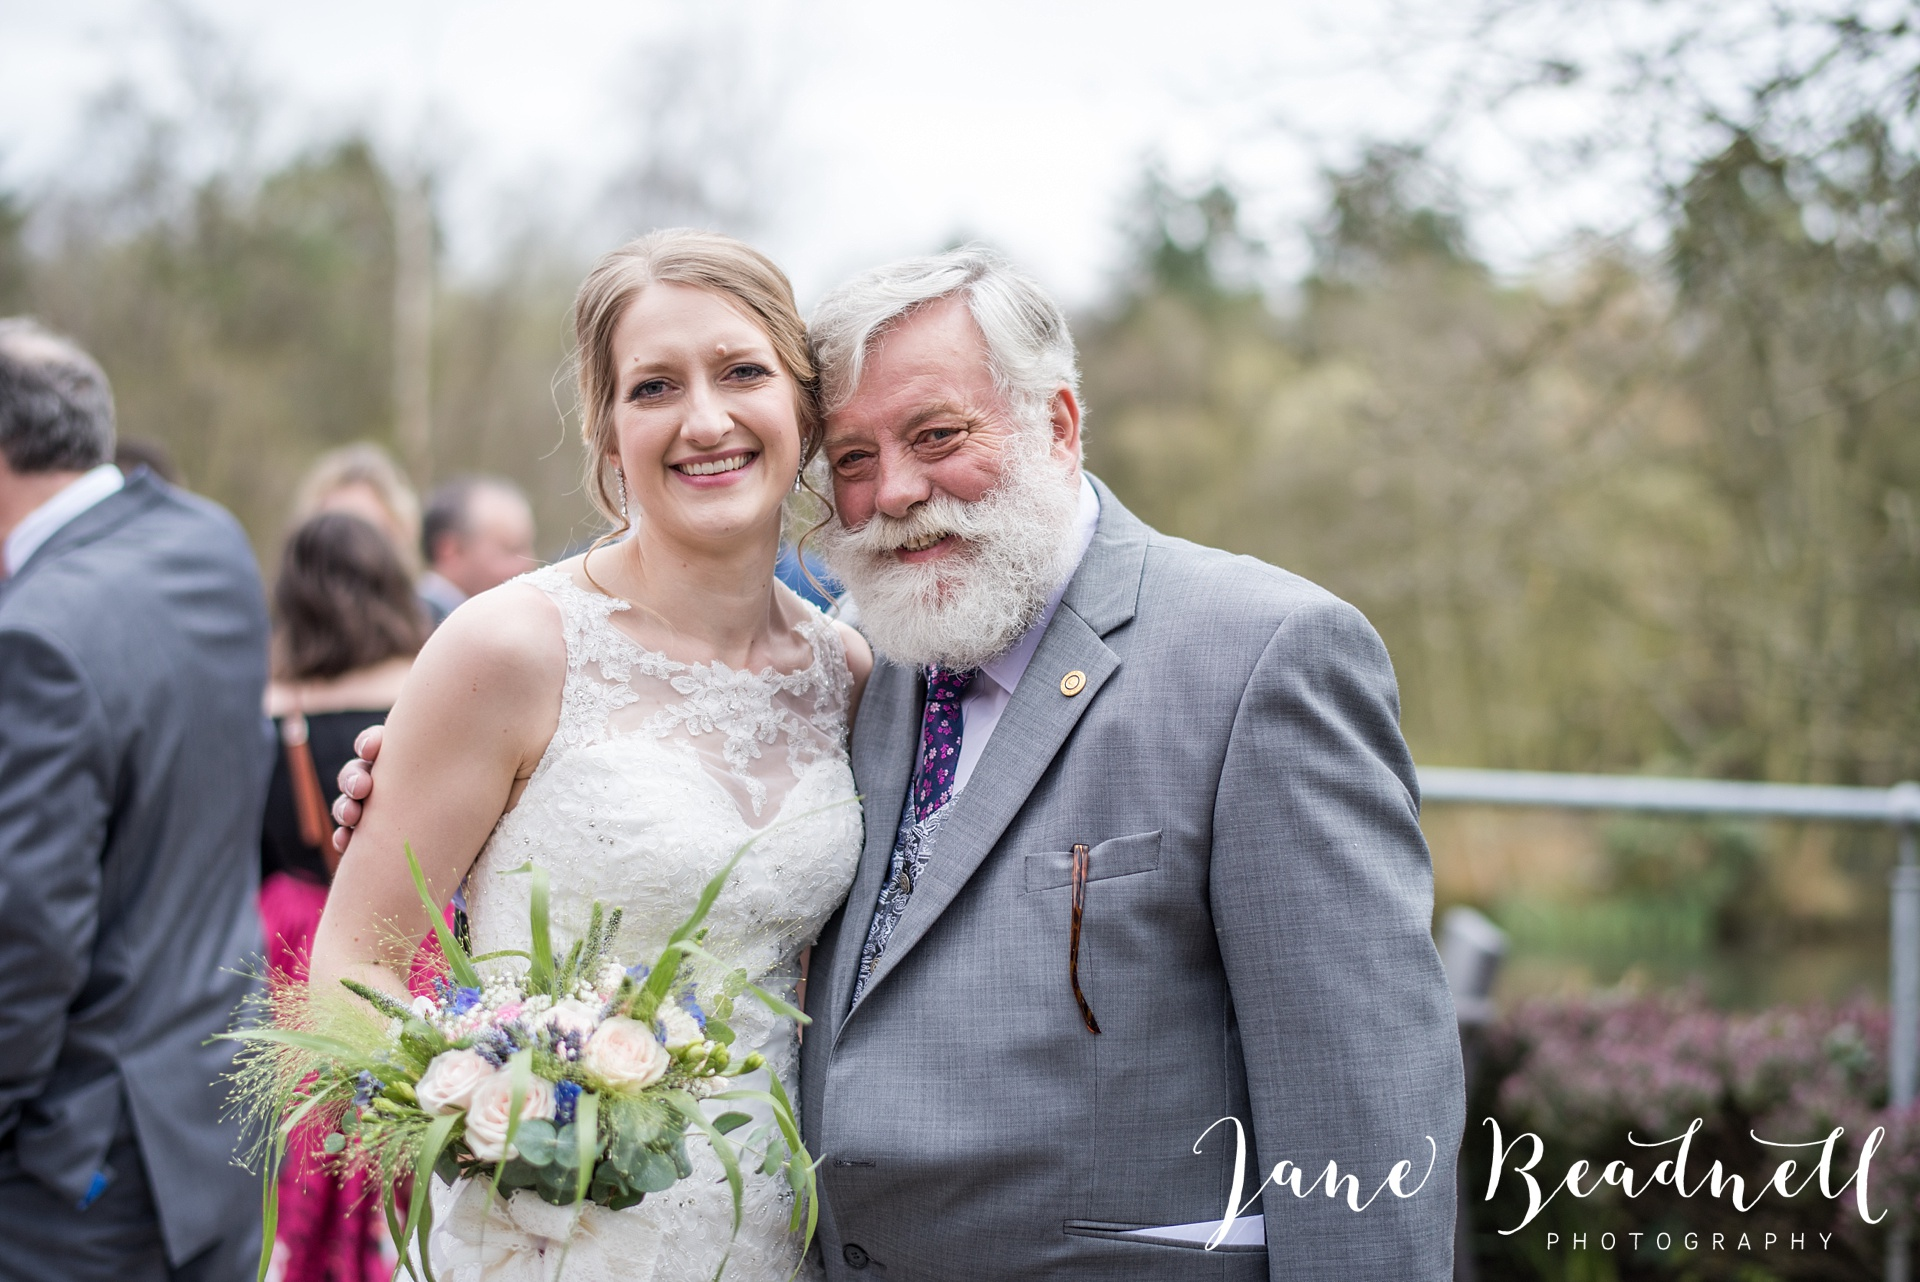 Otley Chevin Lodge wedding photography by Jane Beadnell Photography Leeds_0077